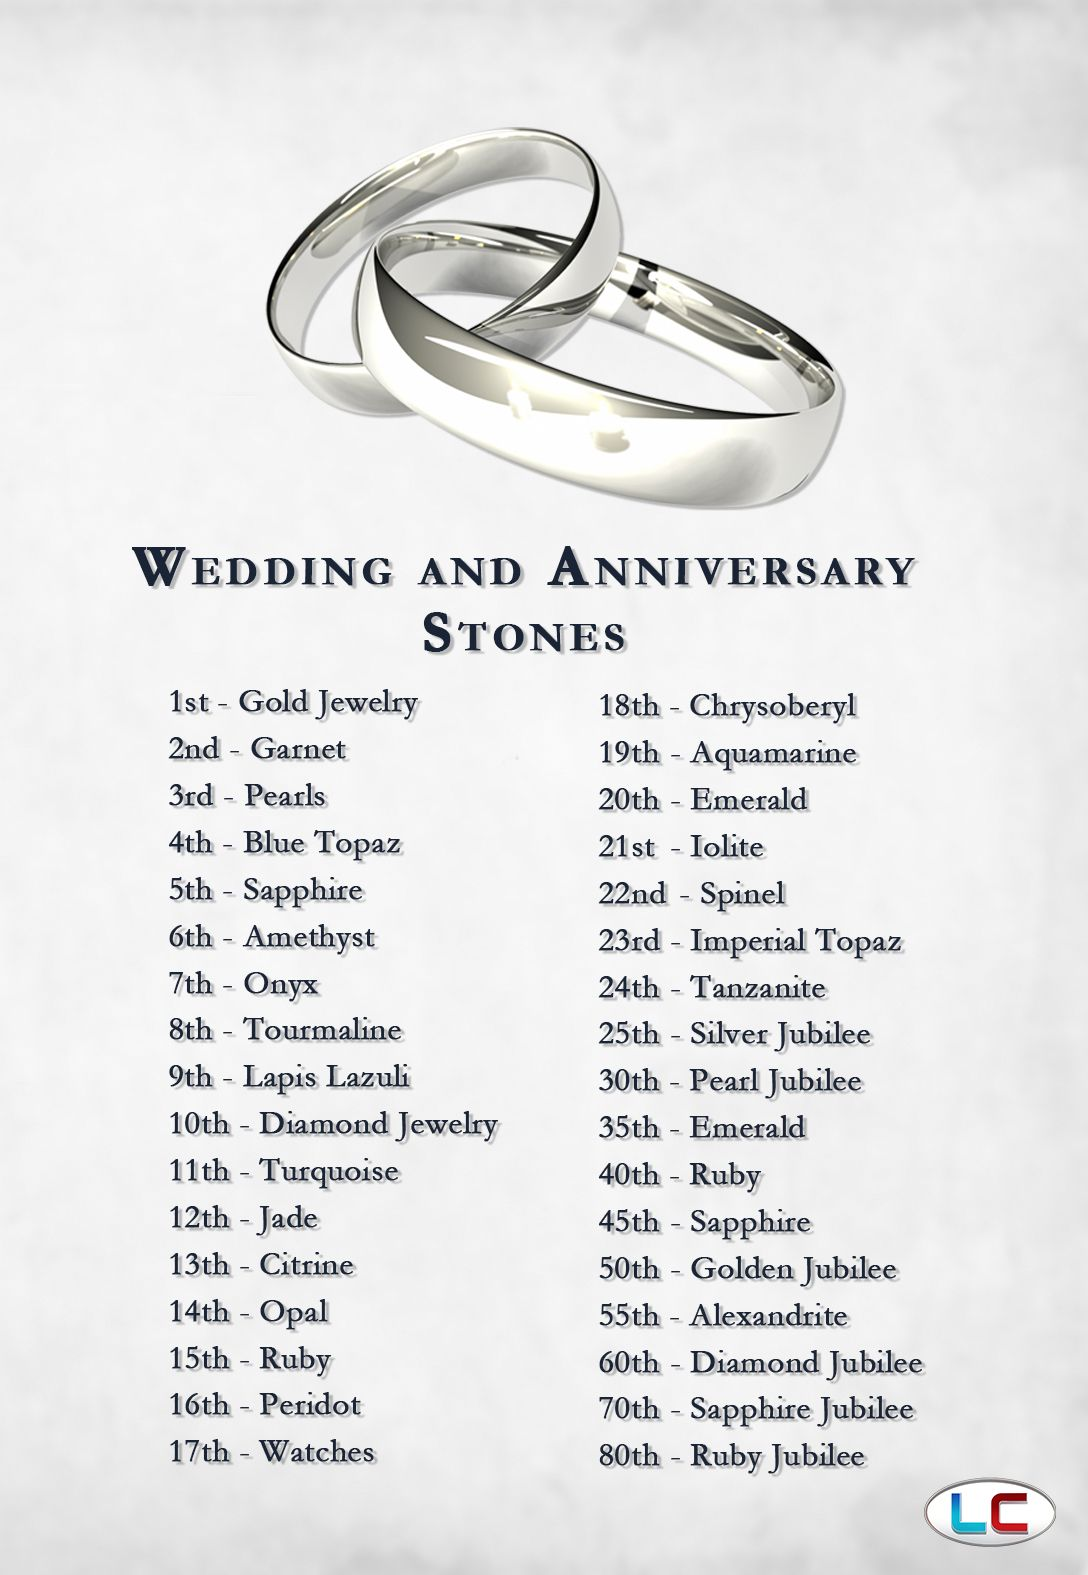 Wedding And Anniversary Gemstones 10th Anniversary Is Diamonds